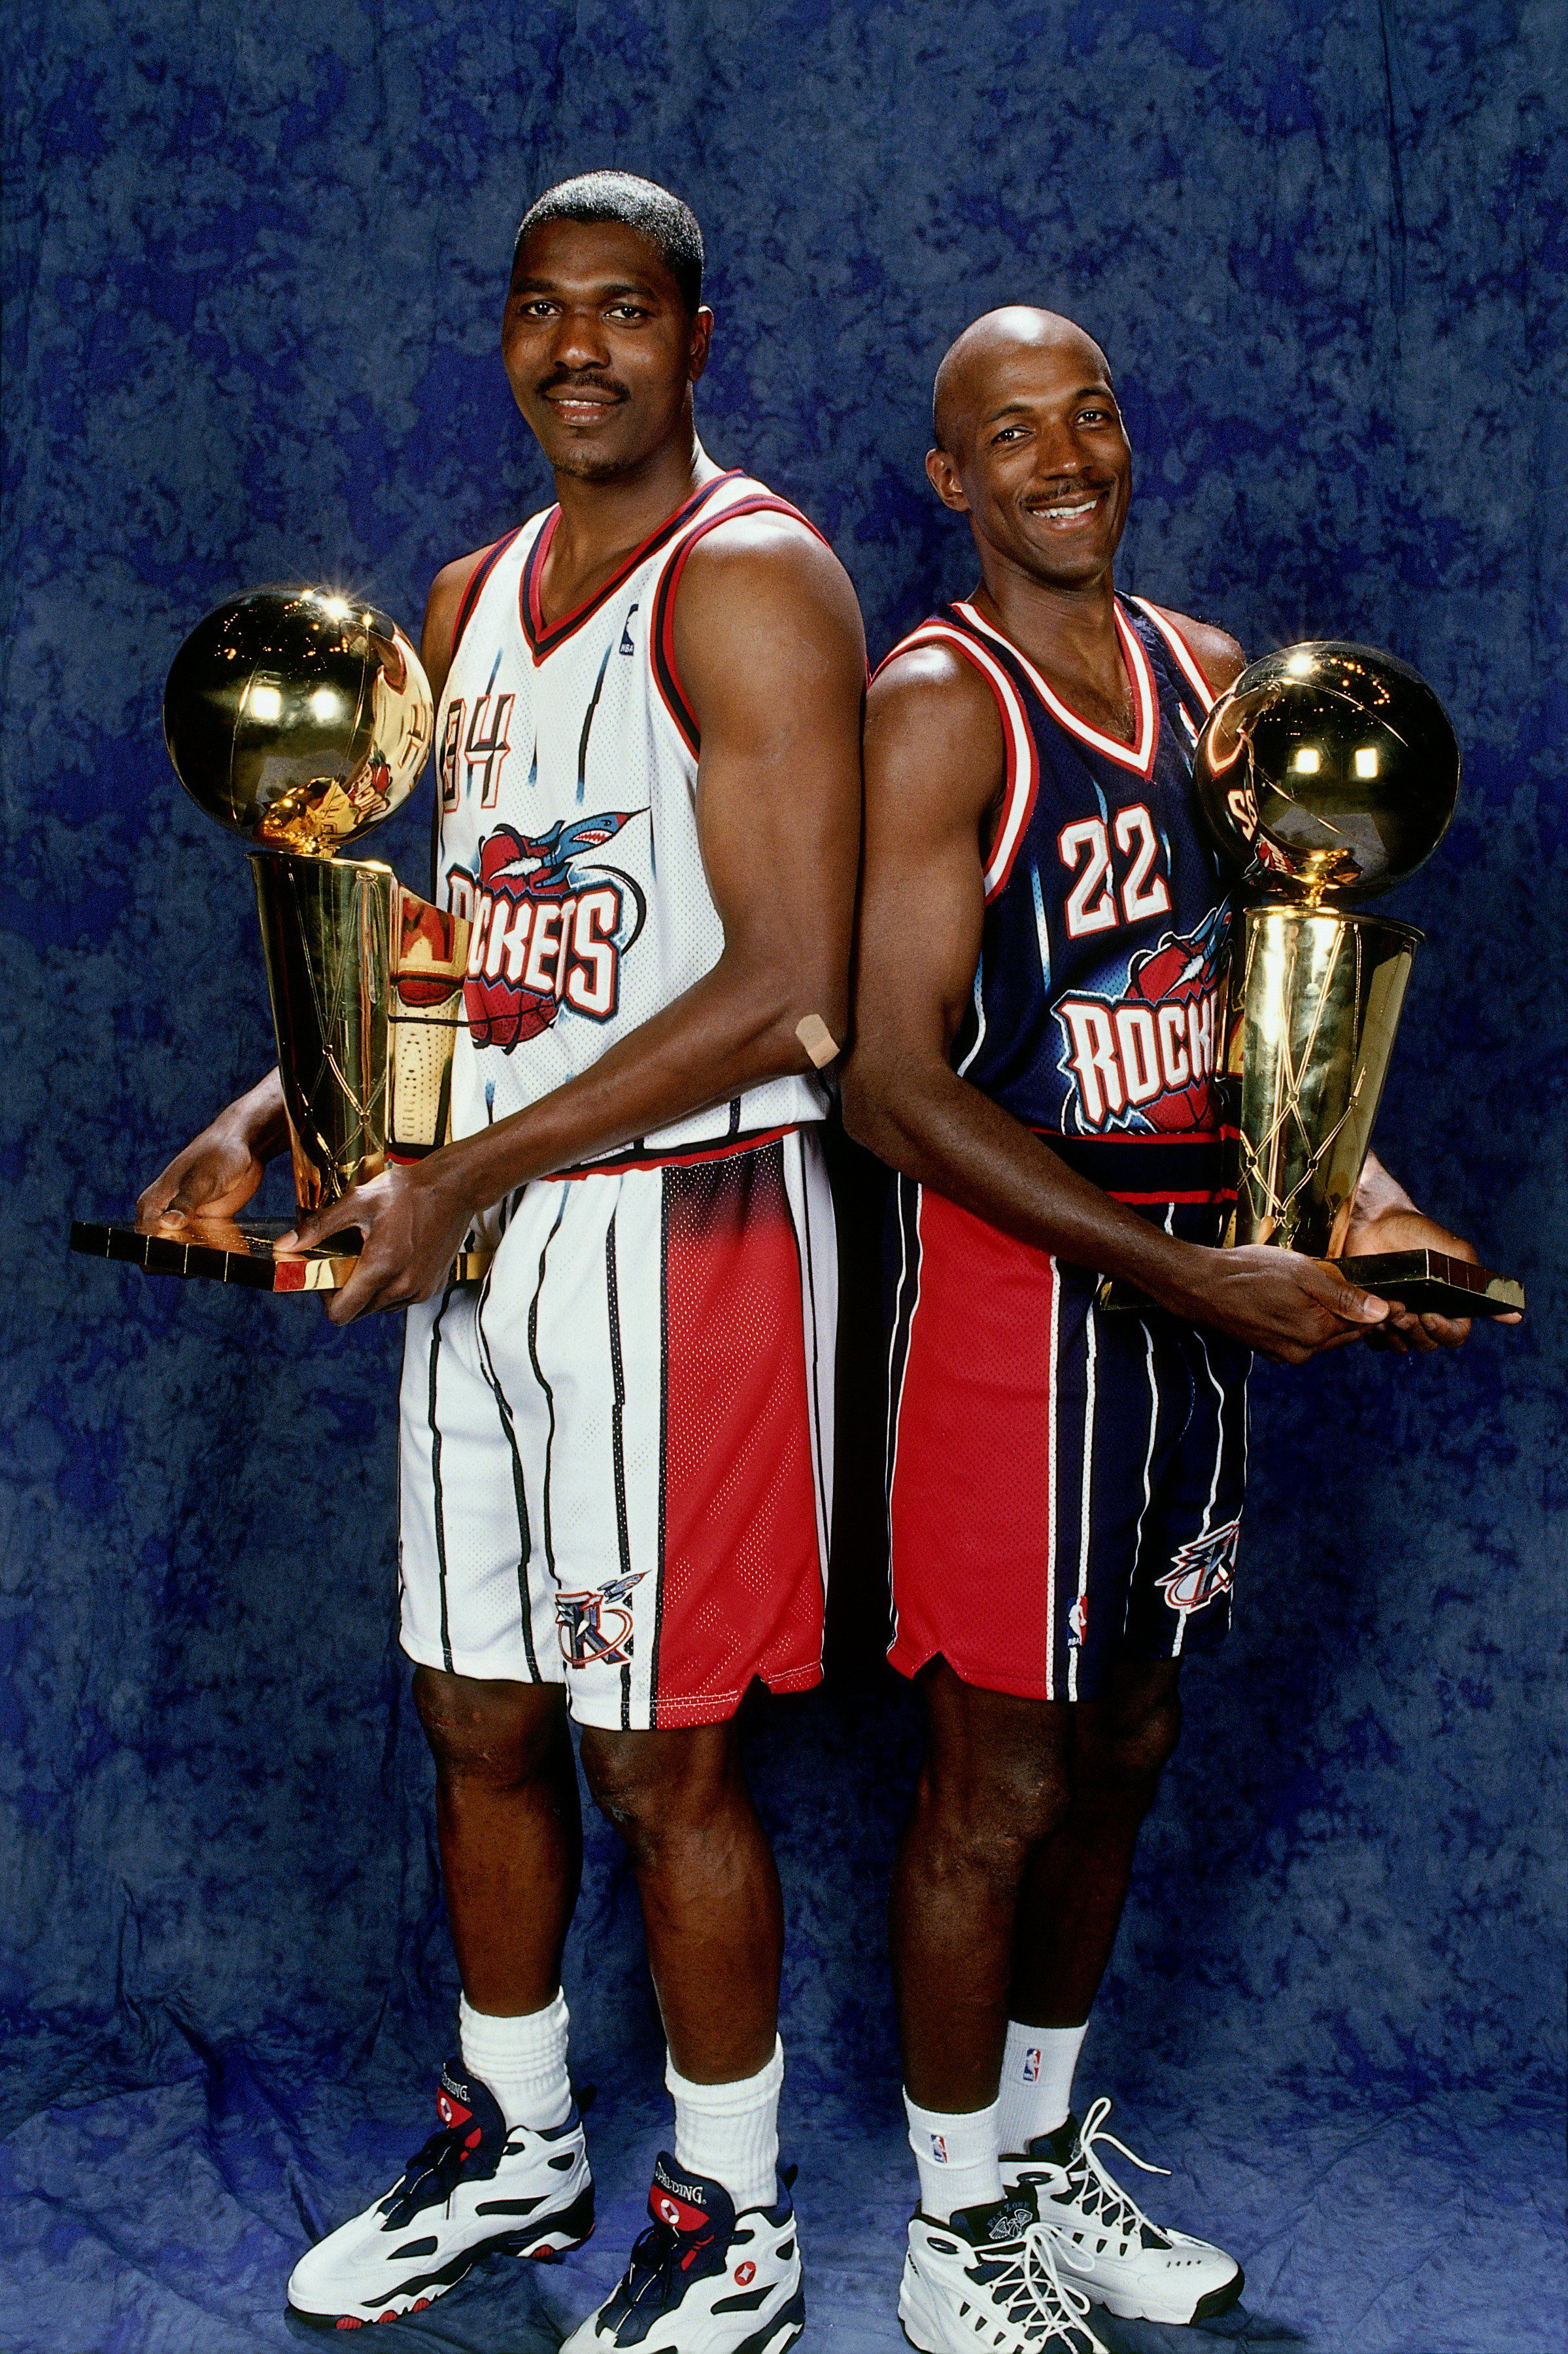 f7dbacb7 Hakeem & Clyde holding the Rockets' two championship trophies. For the  latest Rockets news & updates, visit www.rockets.com.